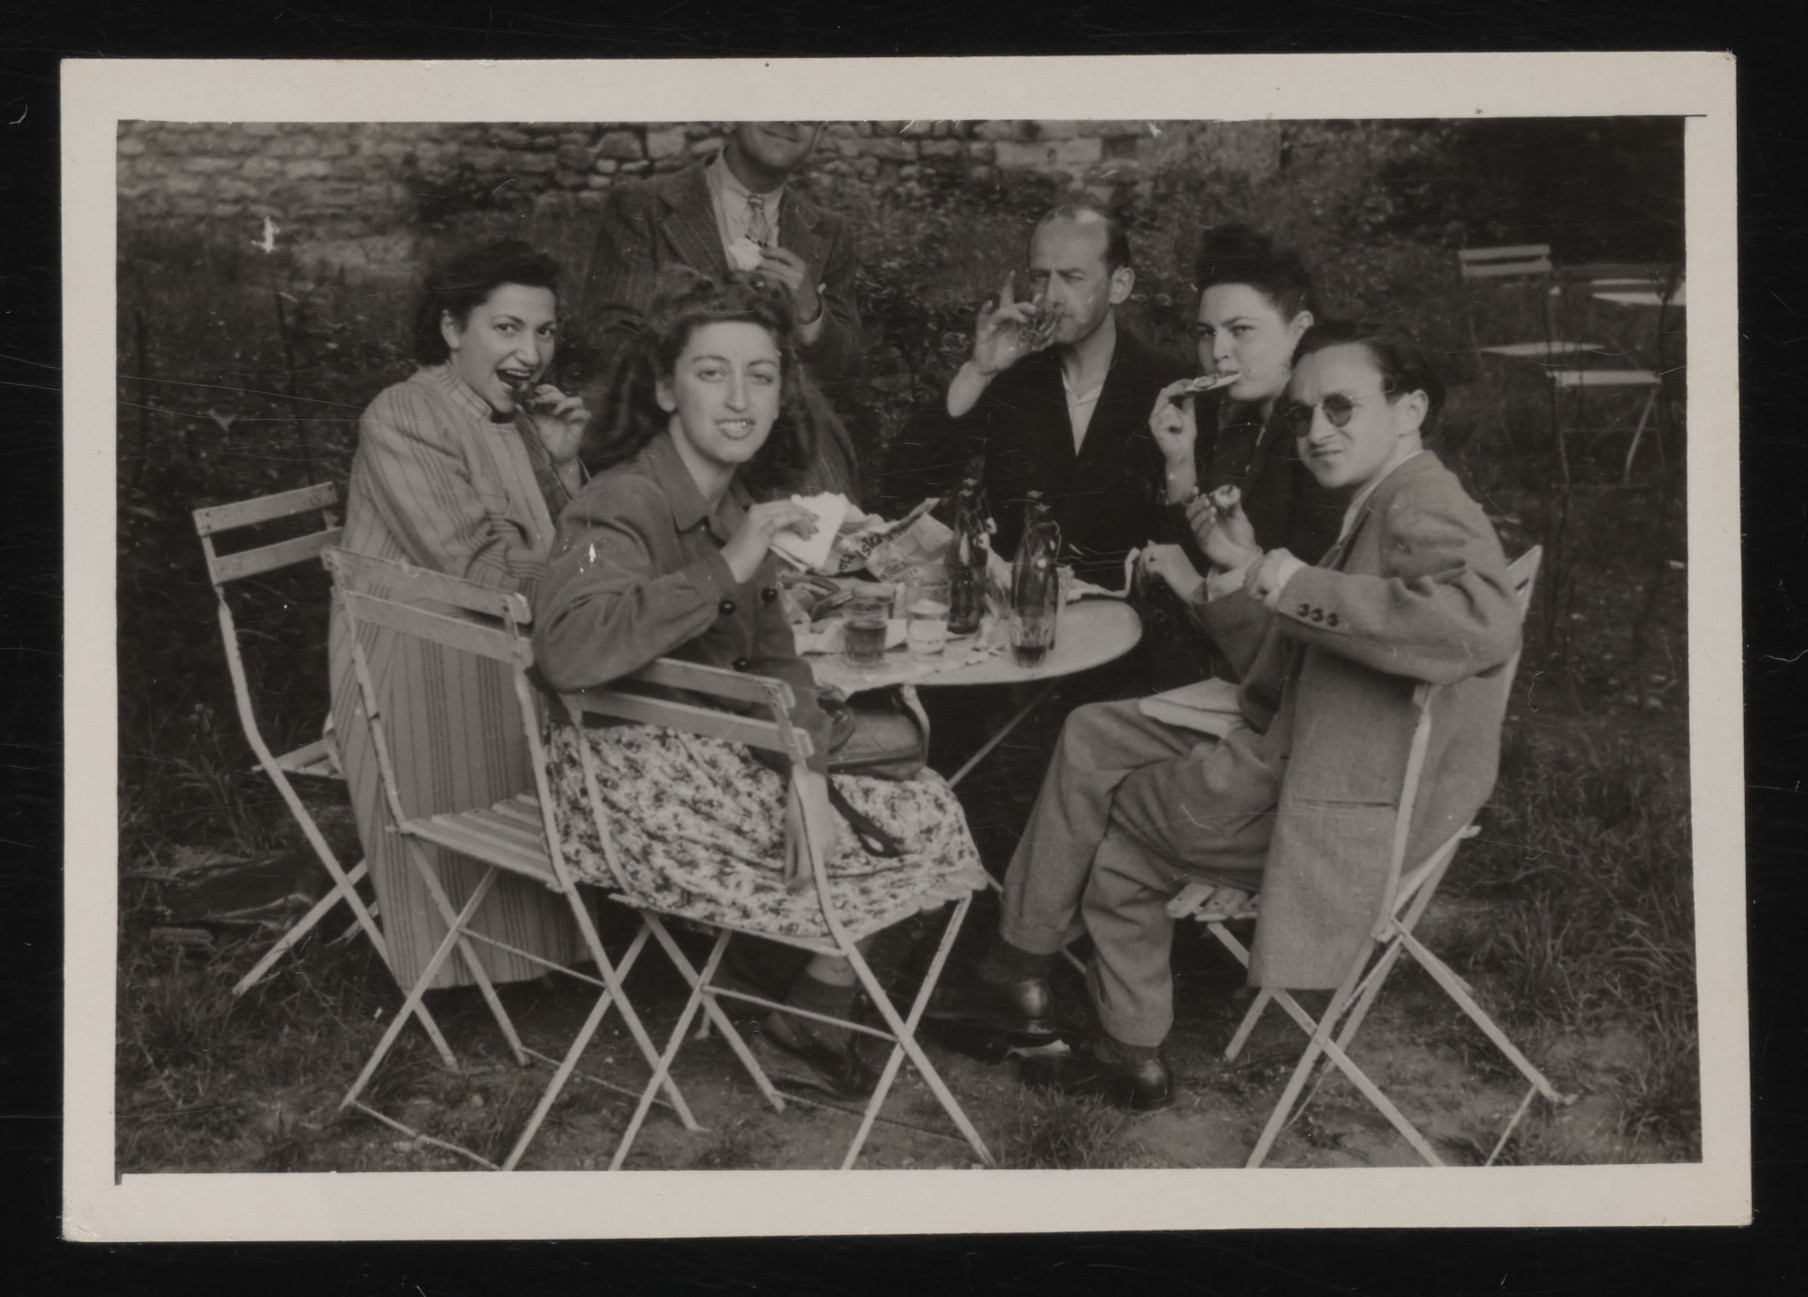 A group of Polish-Jewish DPs eat outside during an outing organized by the Ihud Zionist youth movement.     Among those pictured are Jona Zarecki from Grodno, Frieda from Bialystok and Gina Tabaczynska.